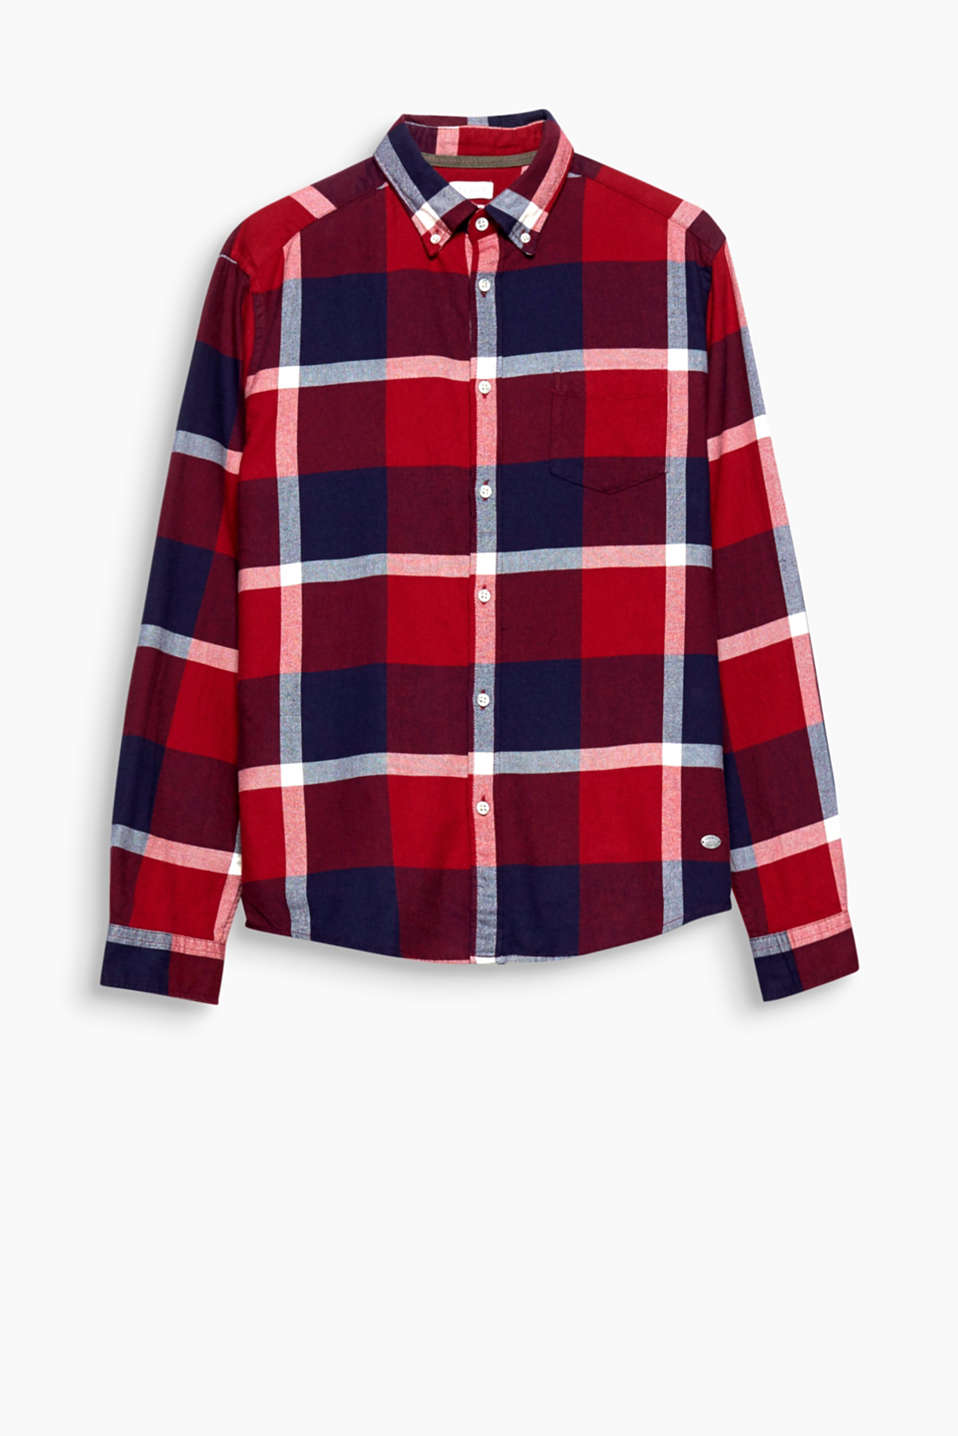 Be it a country or grunge look: the stunning checks make this shirt super cool and eye-catching either way!